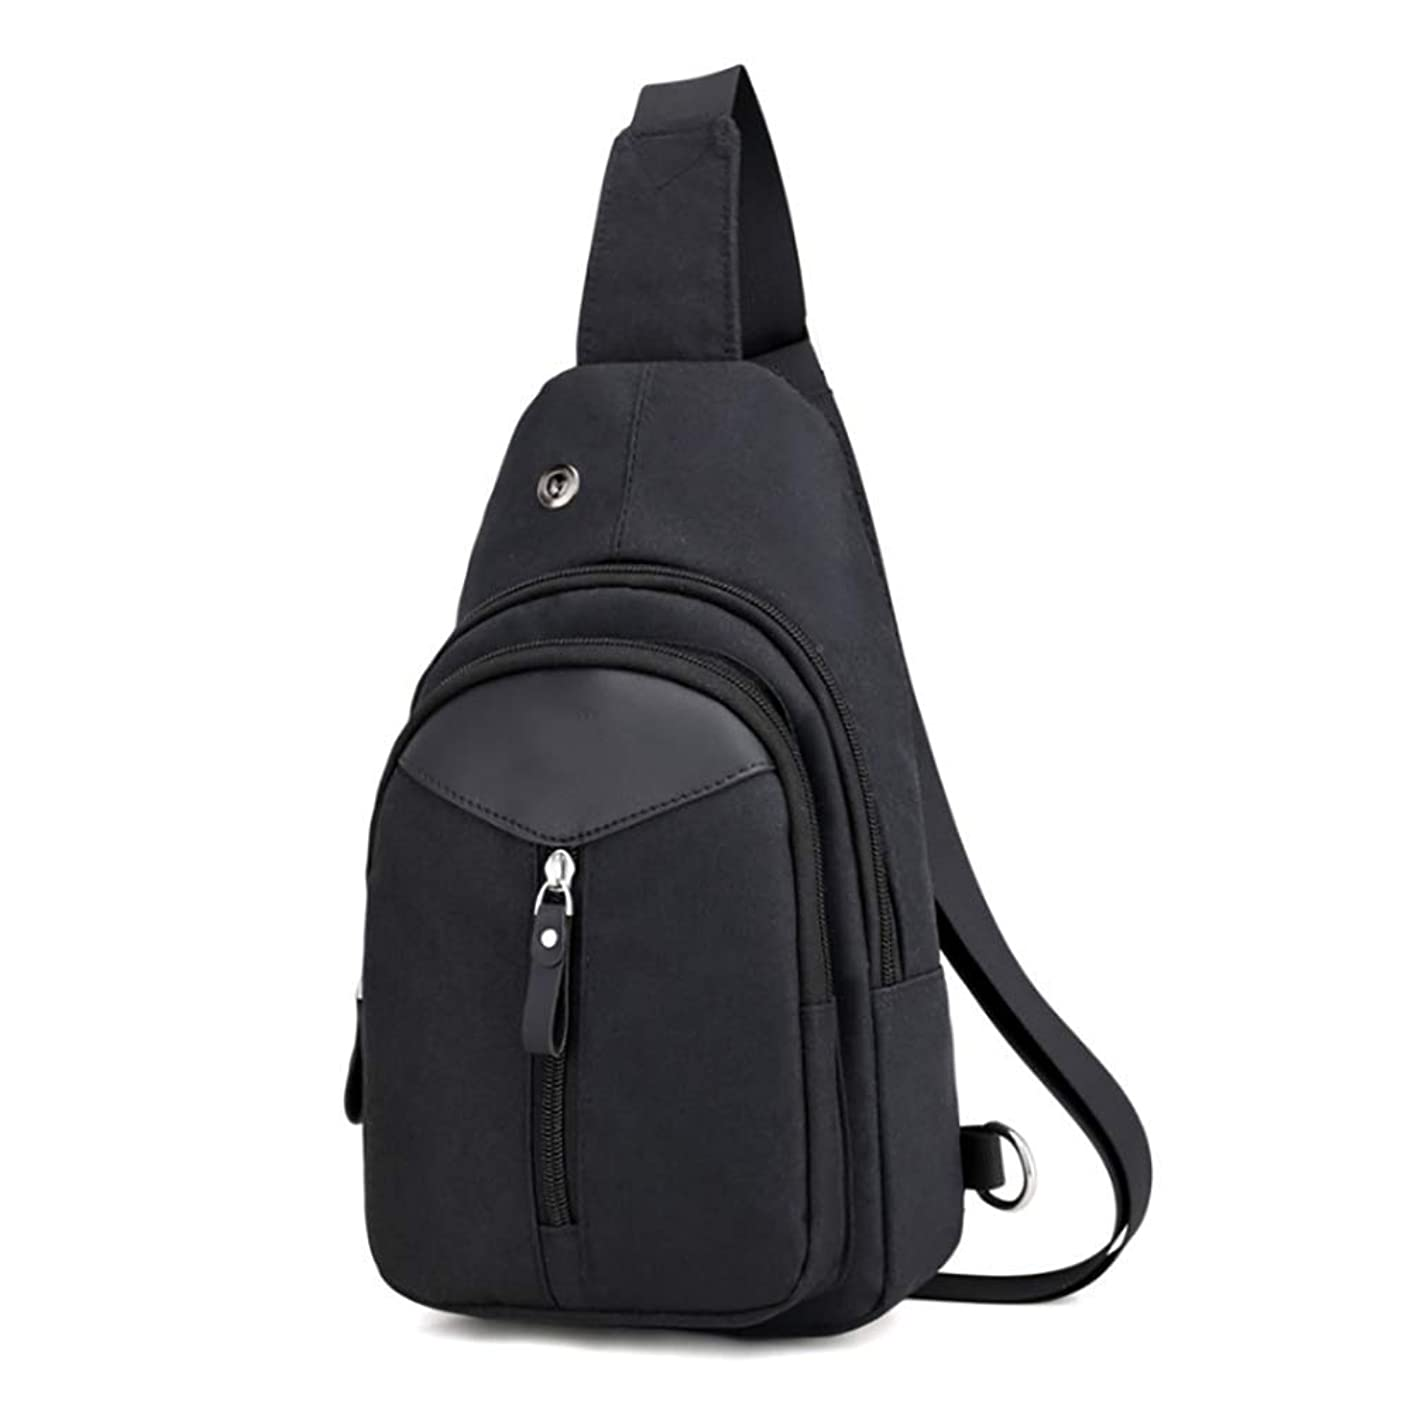 LMHX Shoulder Chest Crossbody Backpack Sling Bag Daypack Bicycle Travel Gym with External Headphone Hole